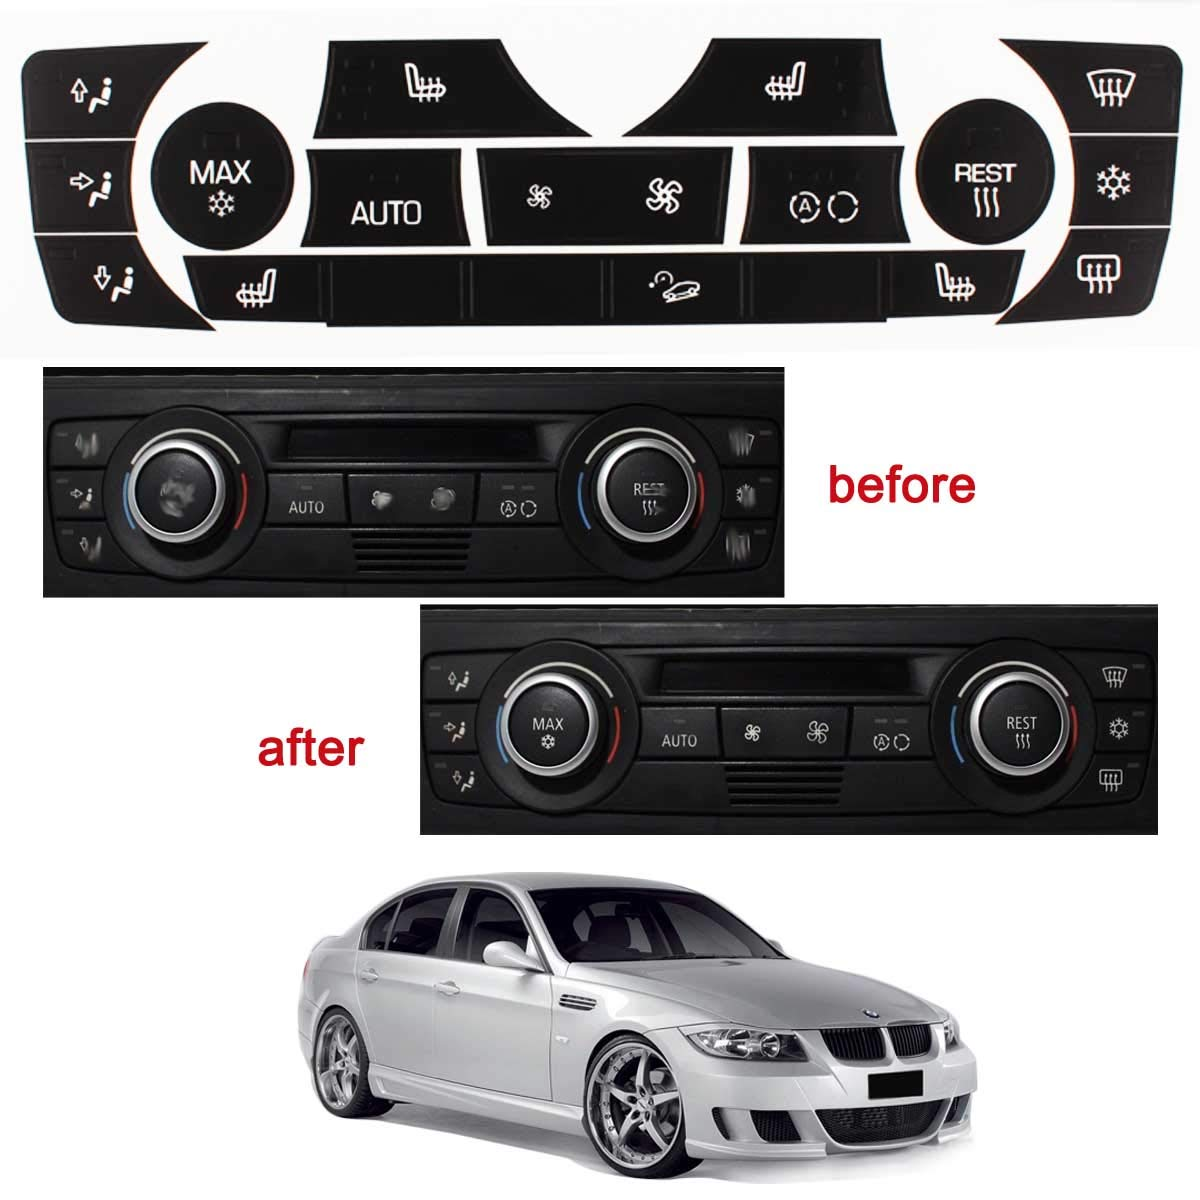 TOMALL AC Control Button Repair Stickers Kit for 2006-2011 BMW 3 Series E90 E92 Replacement Ruined Faded Buttons